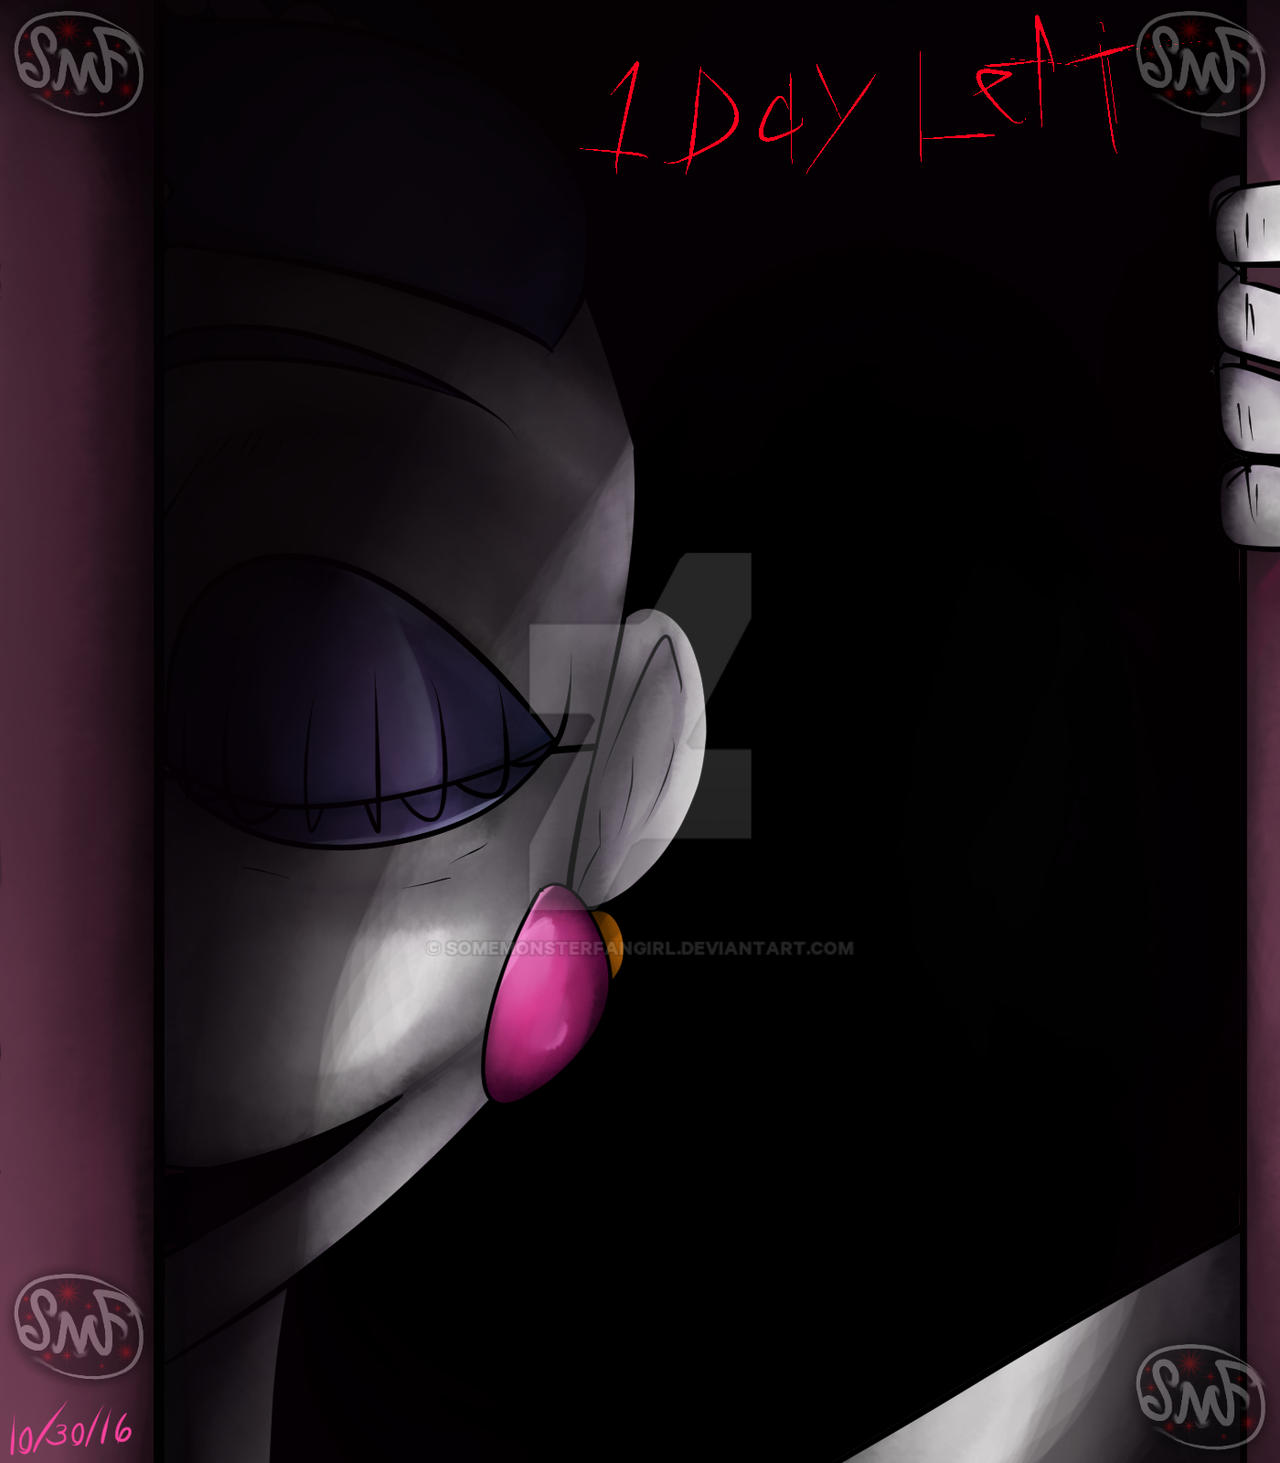 1 Day Left... by SomeMonsterFangirl